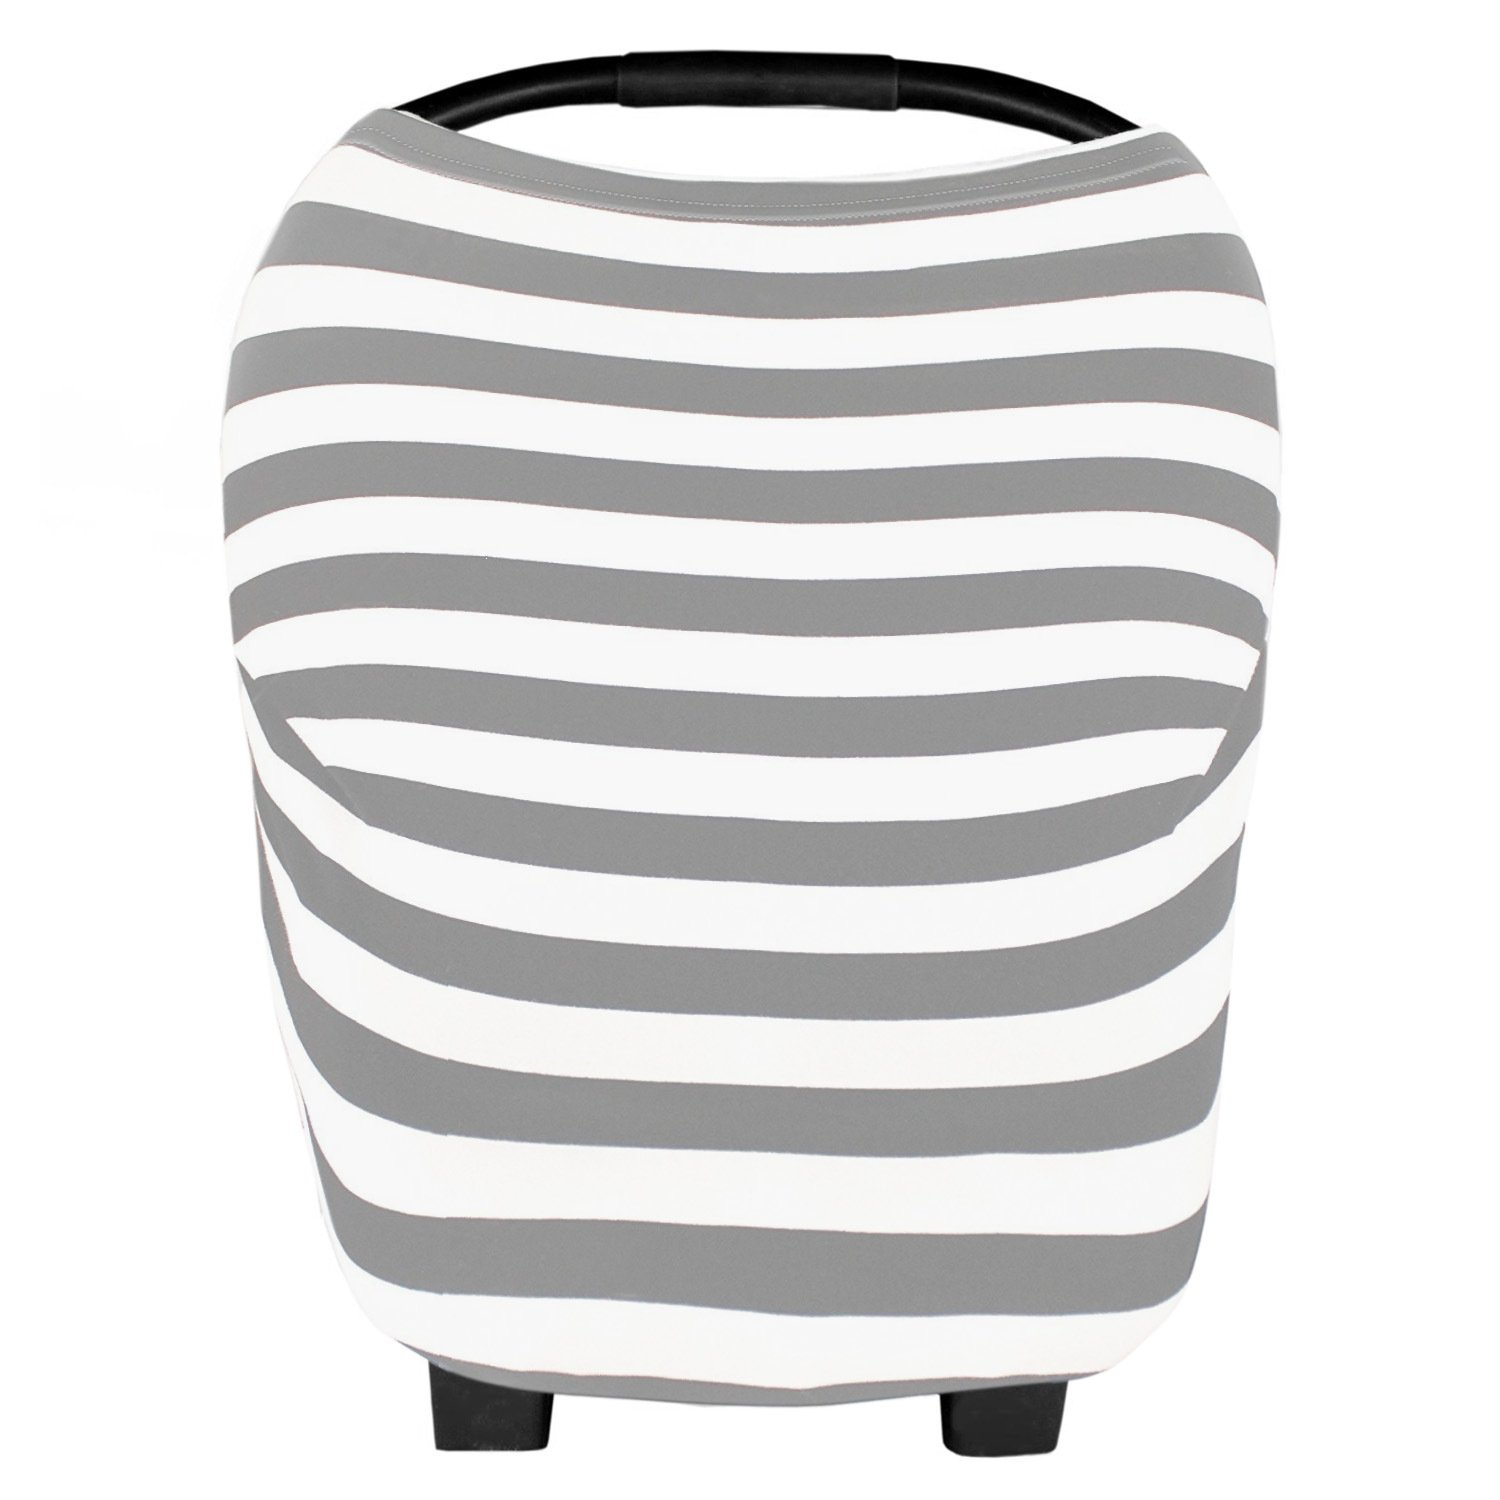 Baby Car Seat Cover and Canopy - Nursing Breastfeeding Infinity Scarf - Multi-Use Nursing Scarf and Stroller Cover - Baby Carrier Cover - Multiple Patterns (Gray and White Stripes)